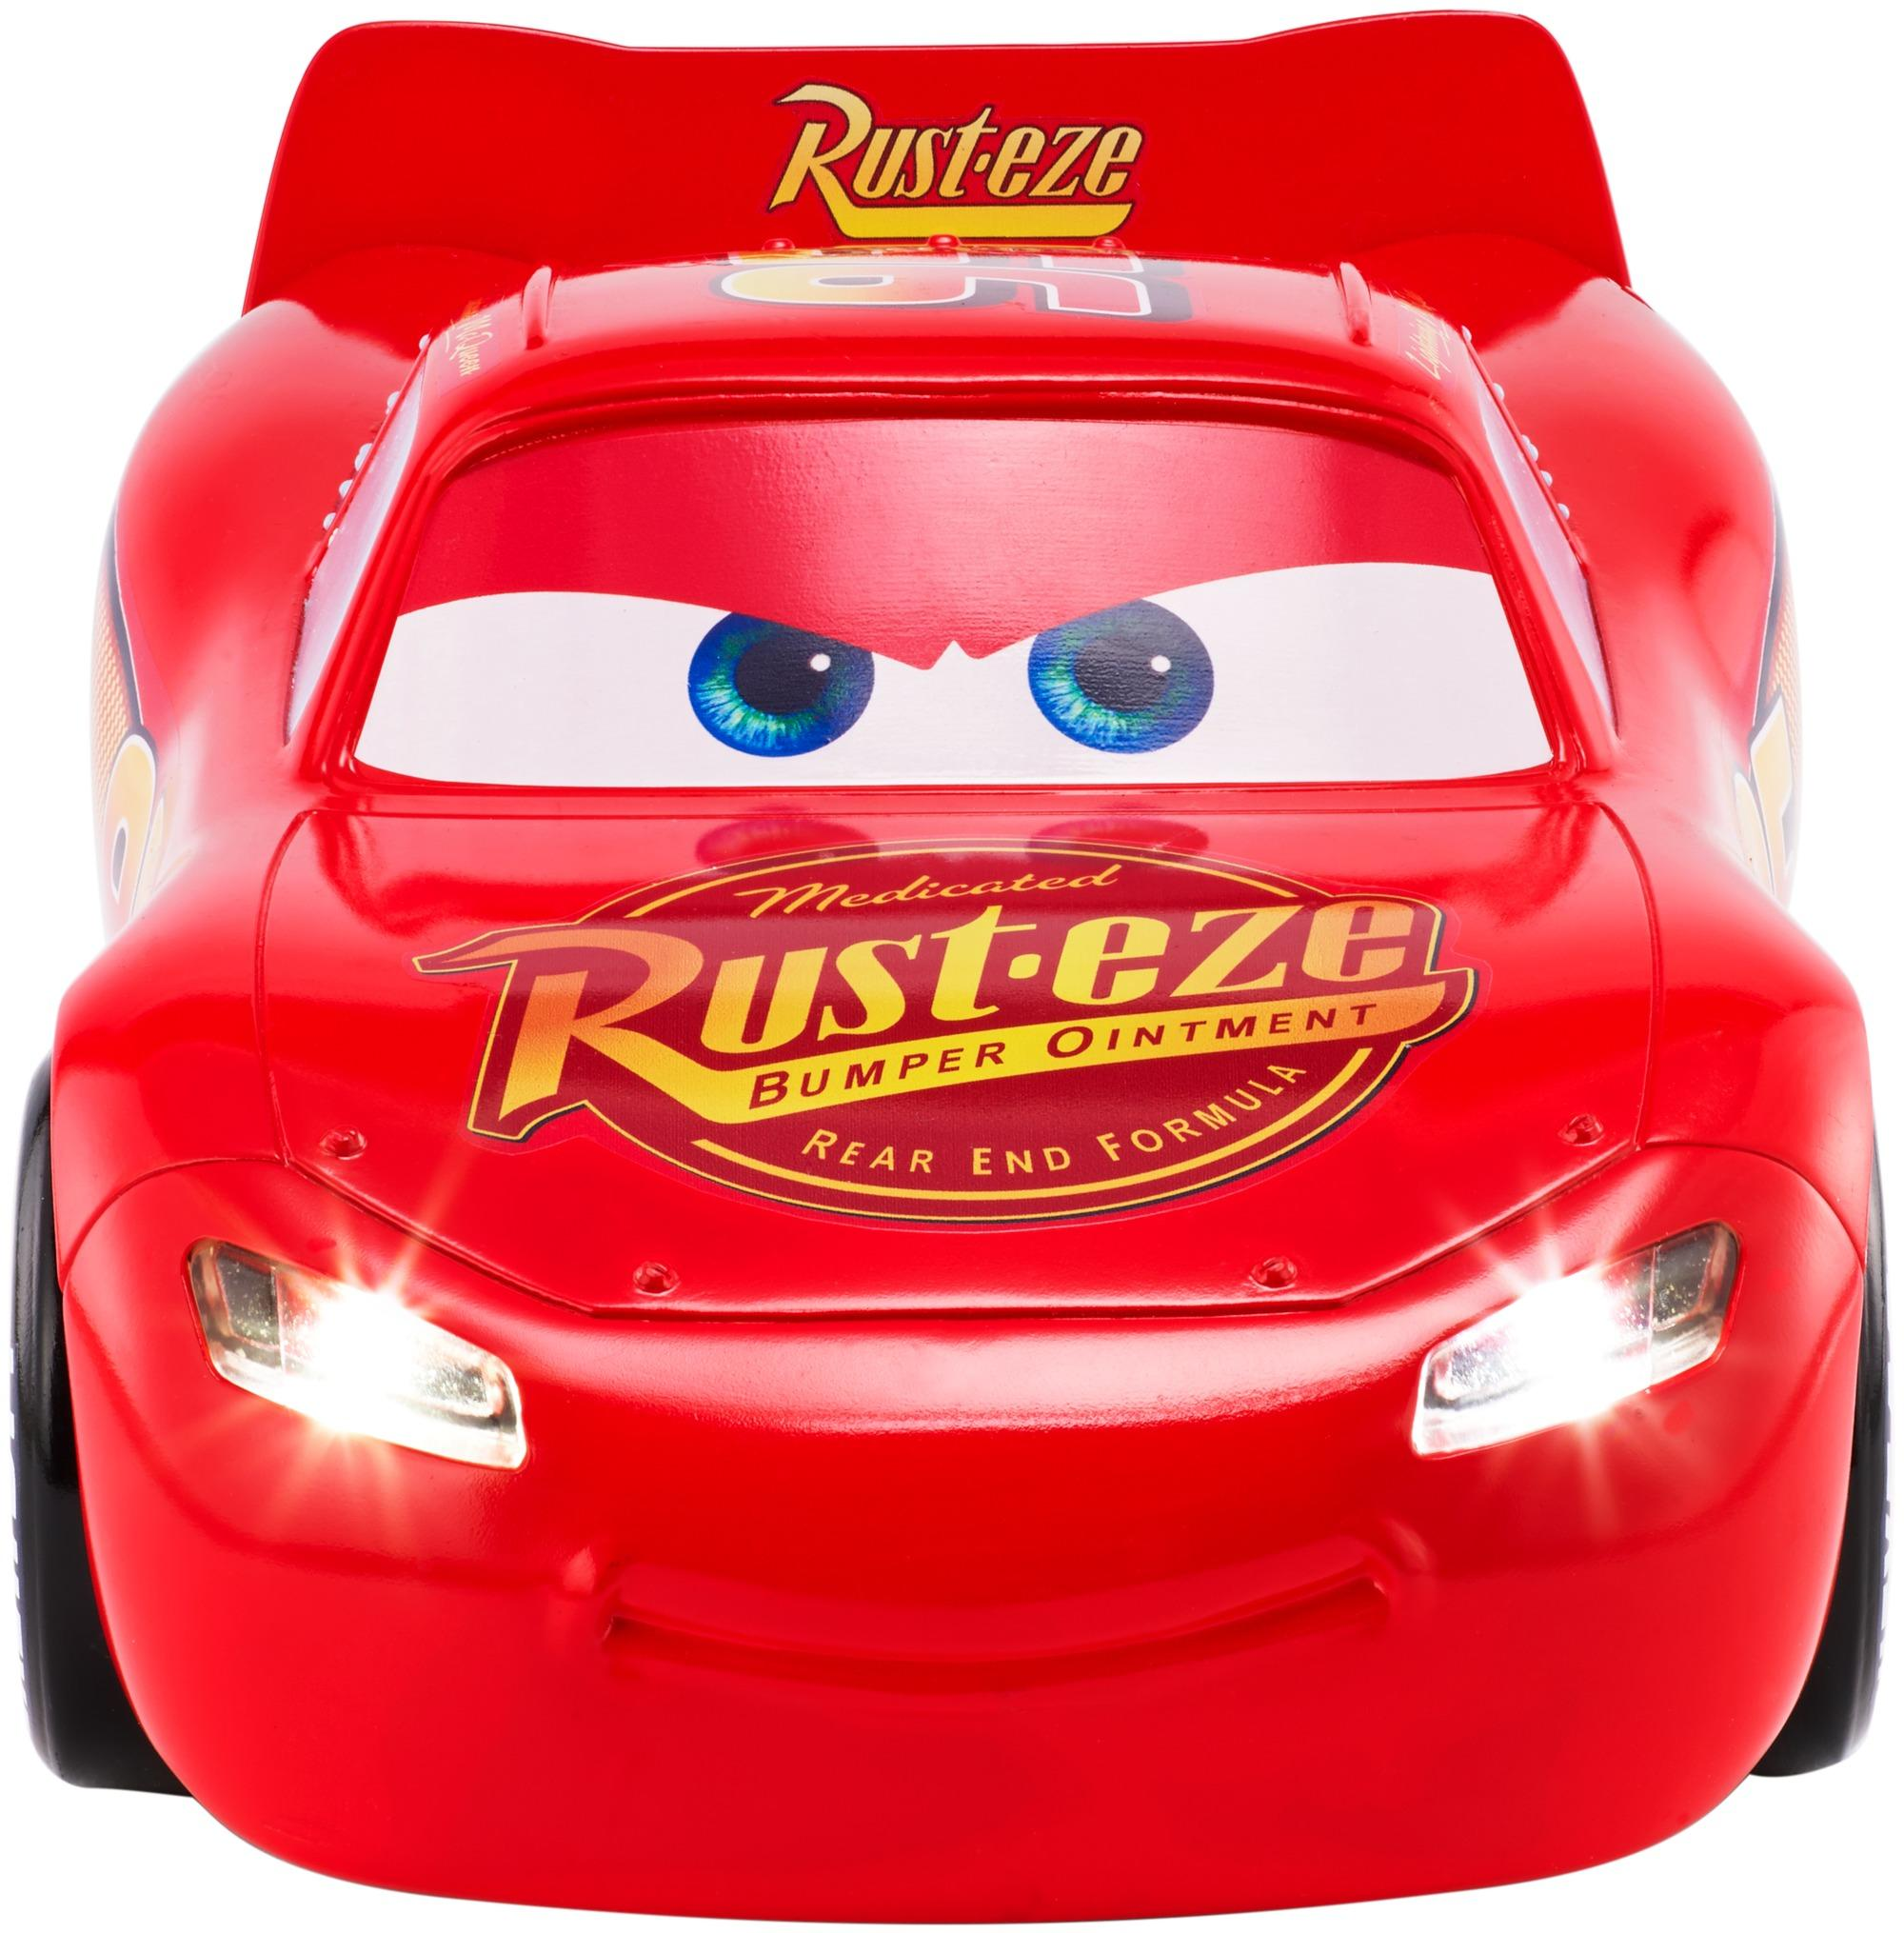 Cars The Movie: Amazon.com: Disney Cars Disney/Pixar Cars 3 Movie Moves